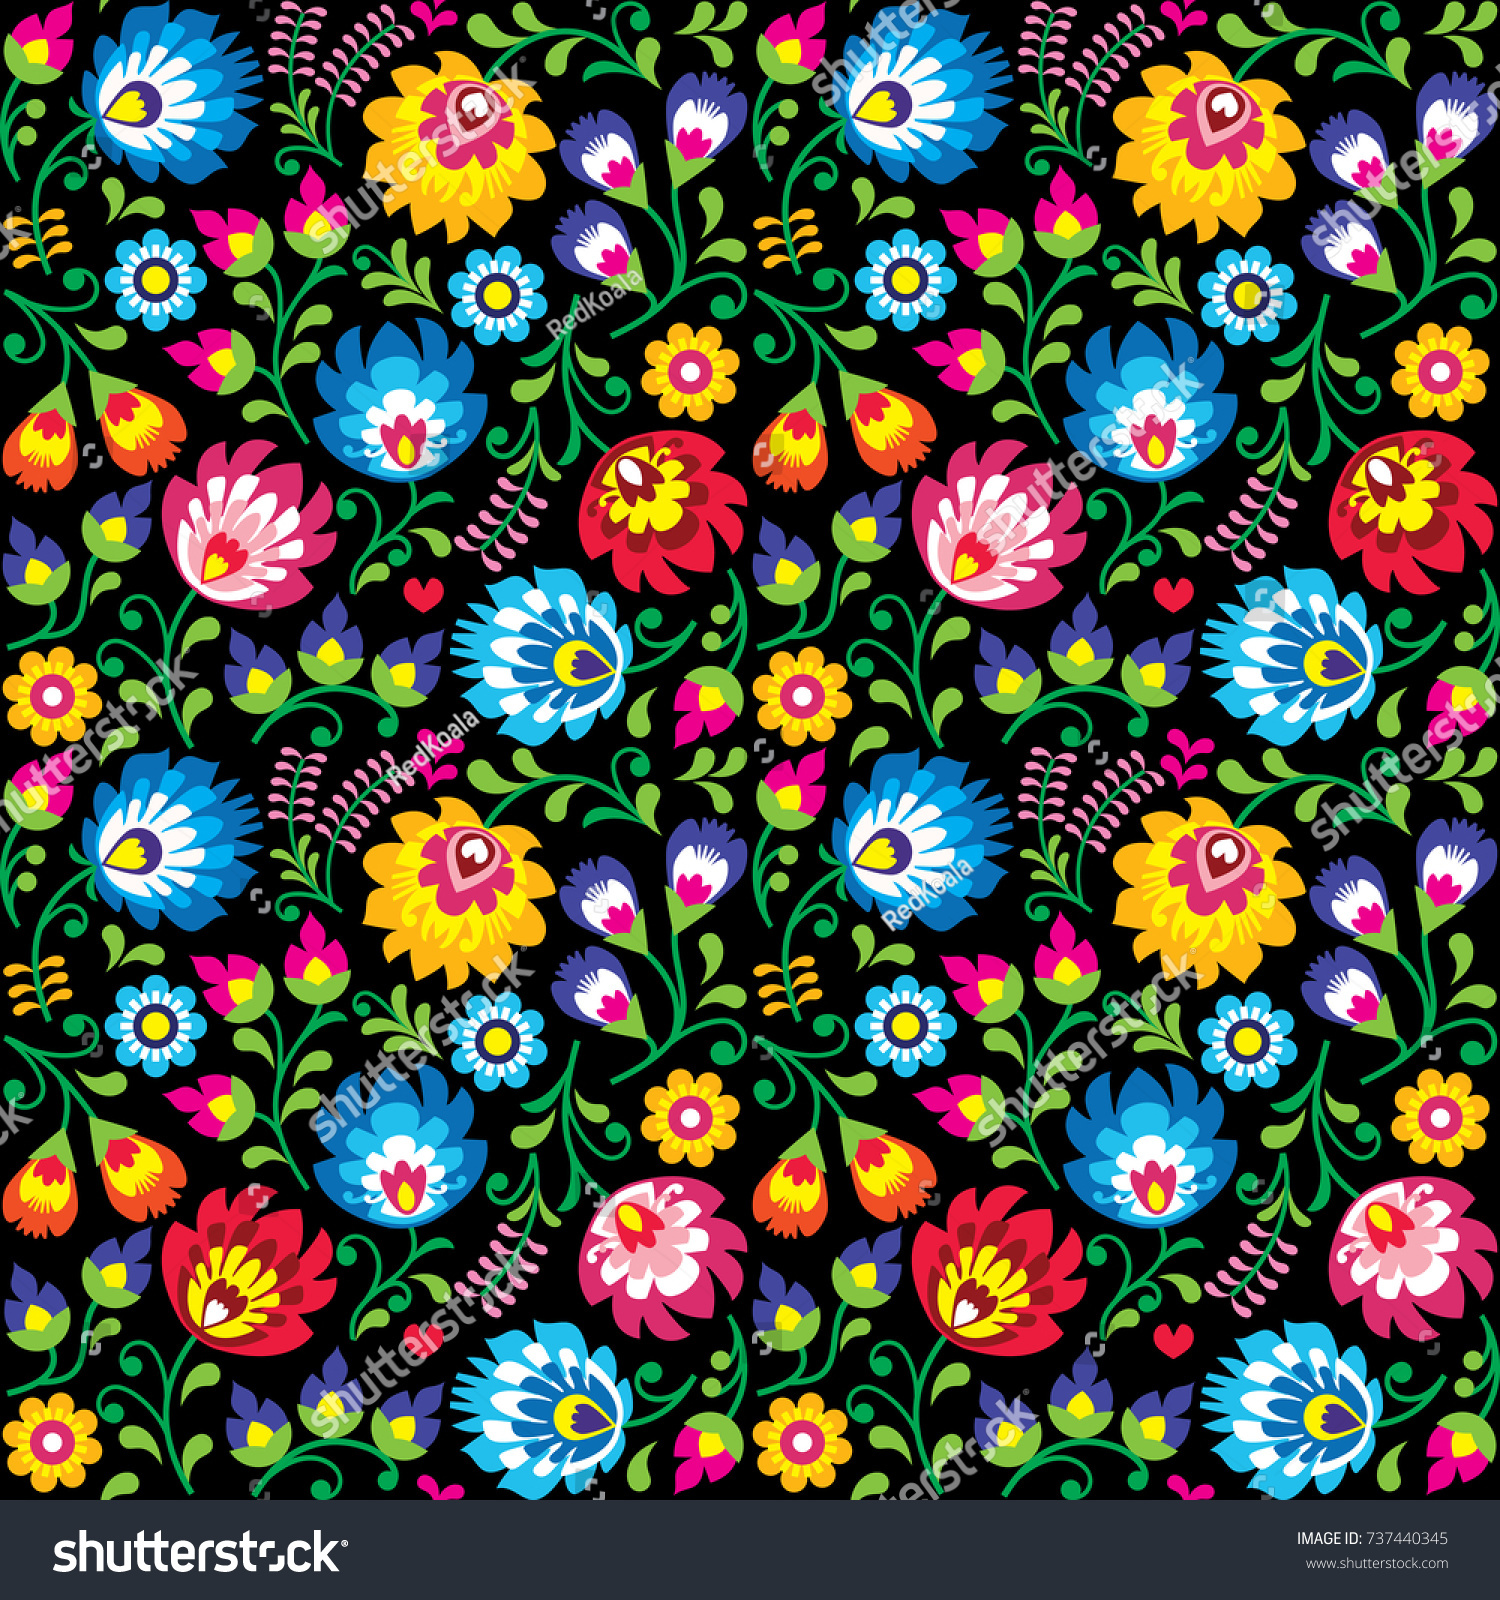 Seamless Vector Polish Folk Art Floral Stock Vector Royalty Free